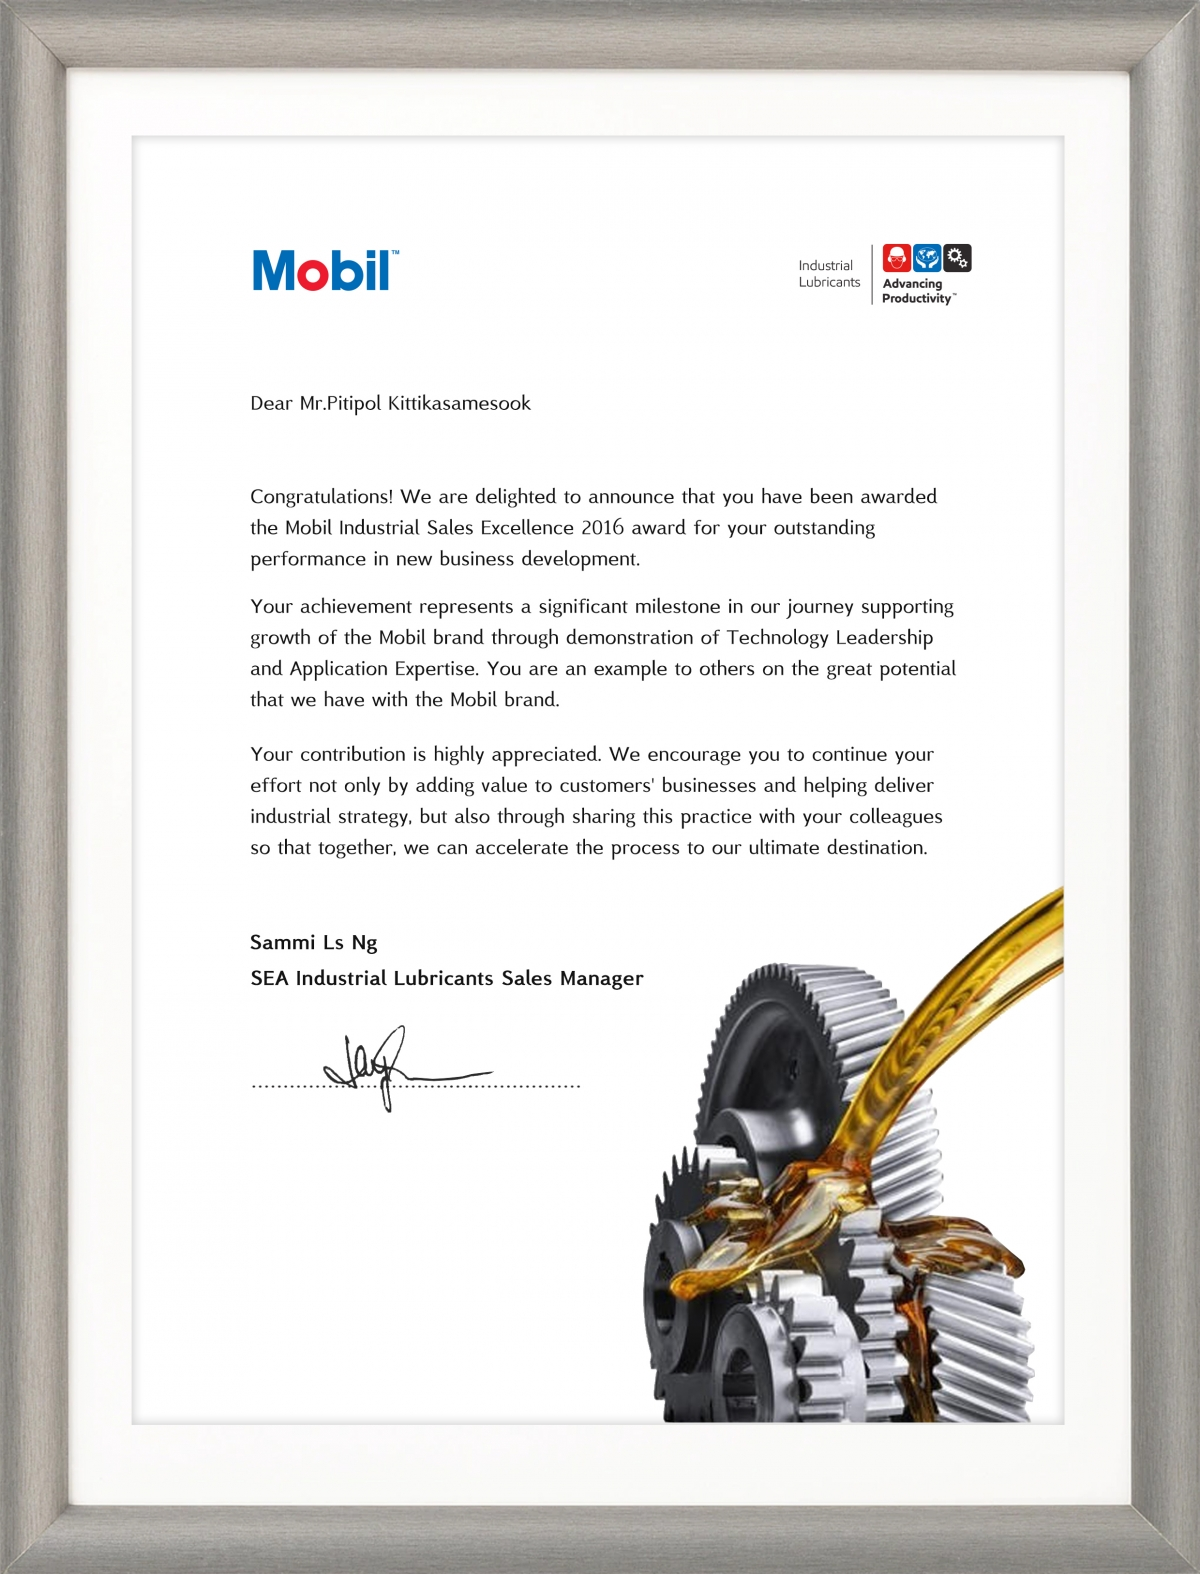 Mobil Industrial Sales Excellence 2016 Award